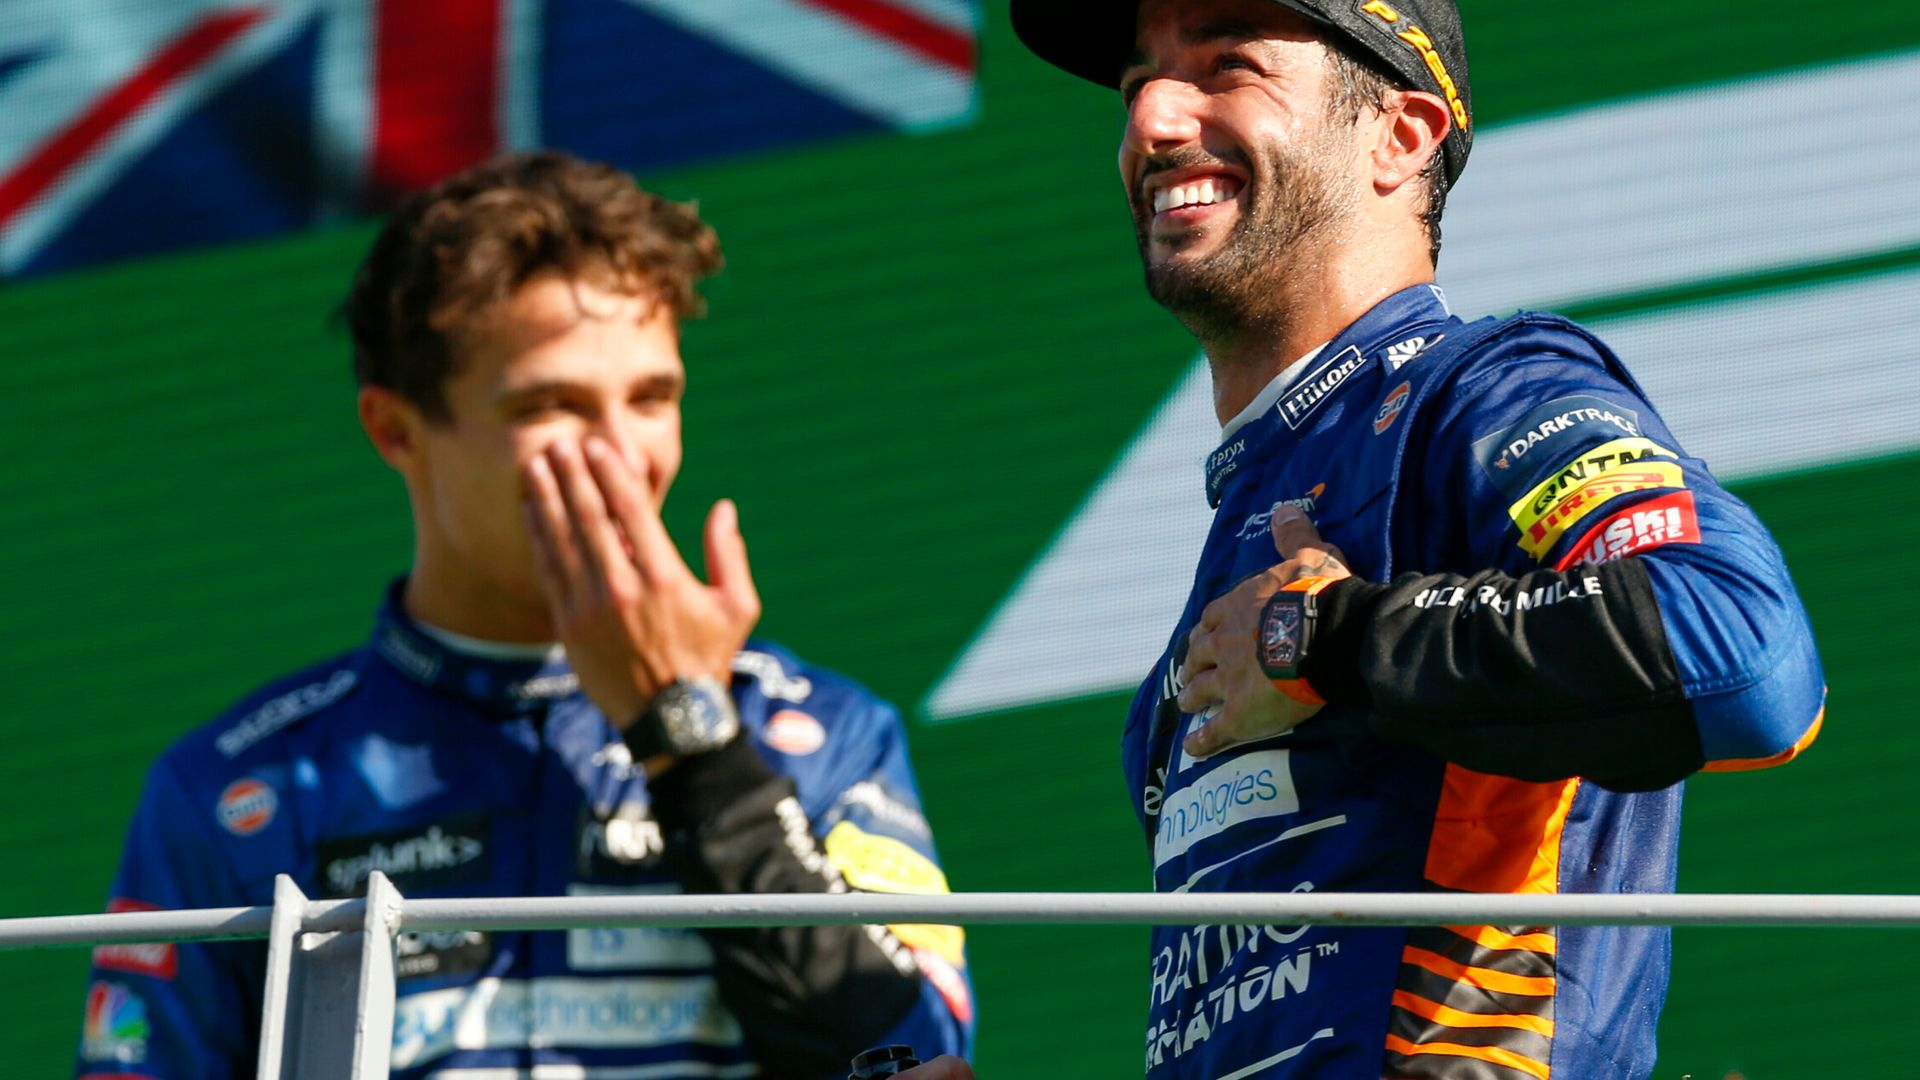 Ricciardo: I never lost faith   McLaren: This is why we signed him